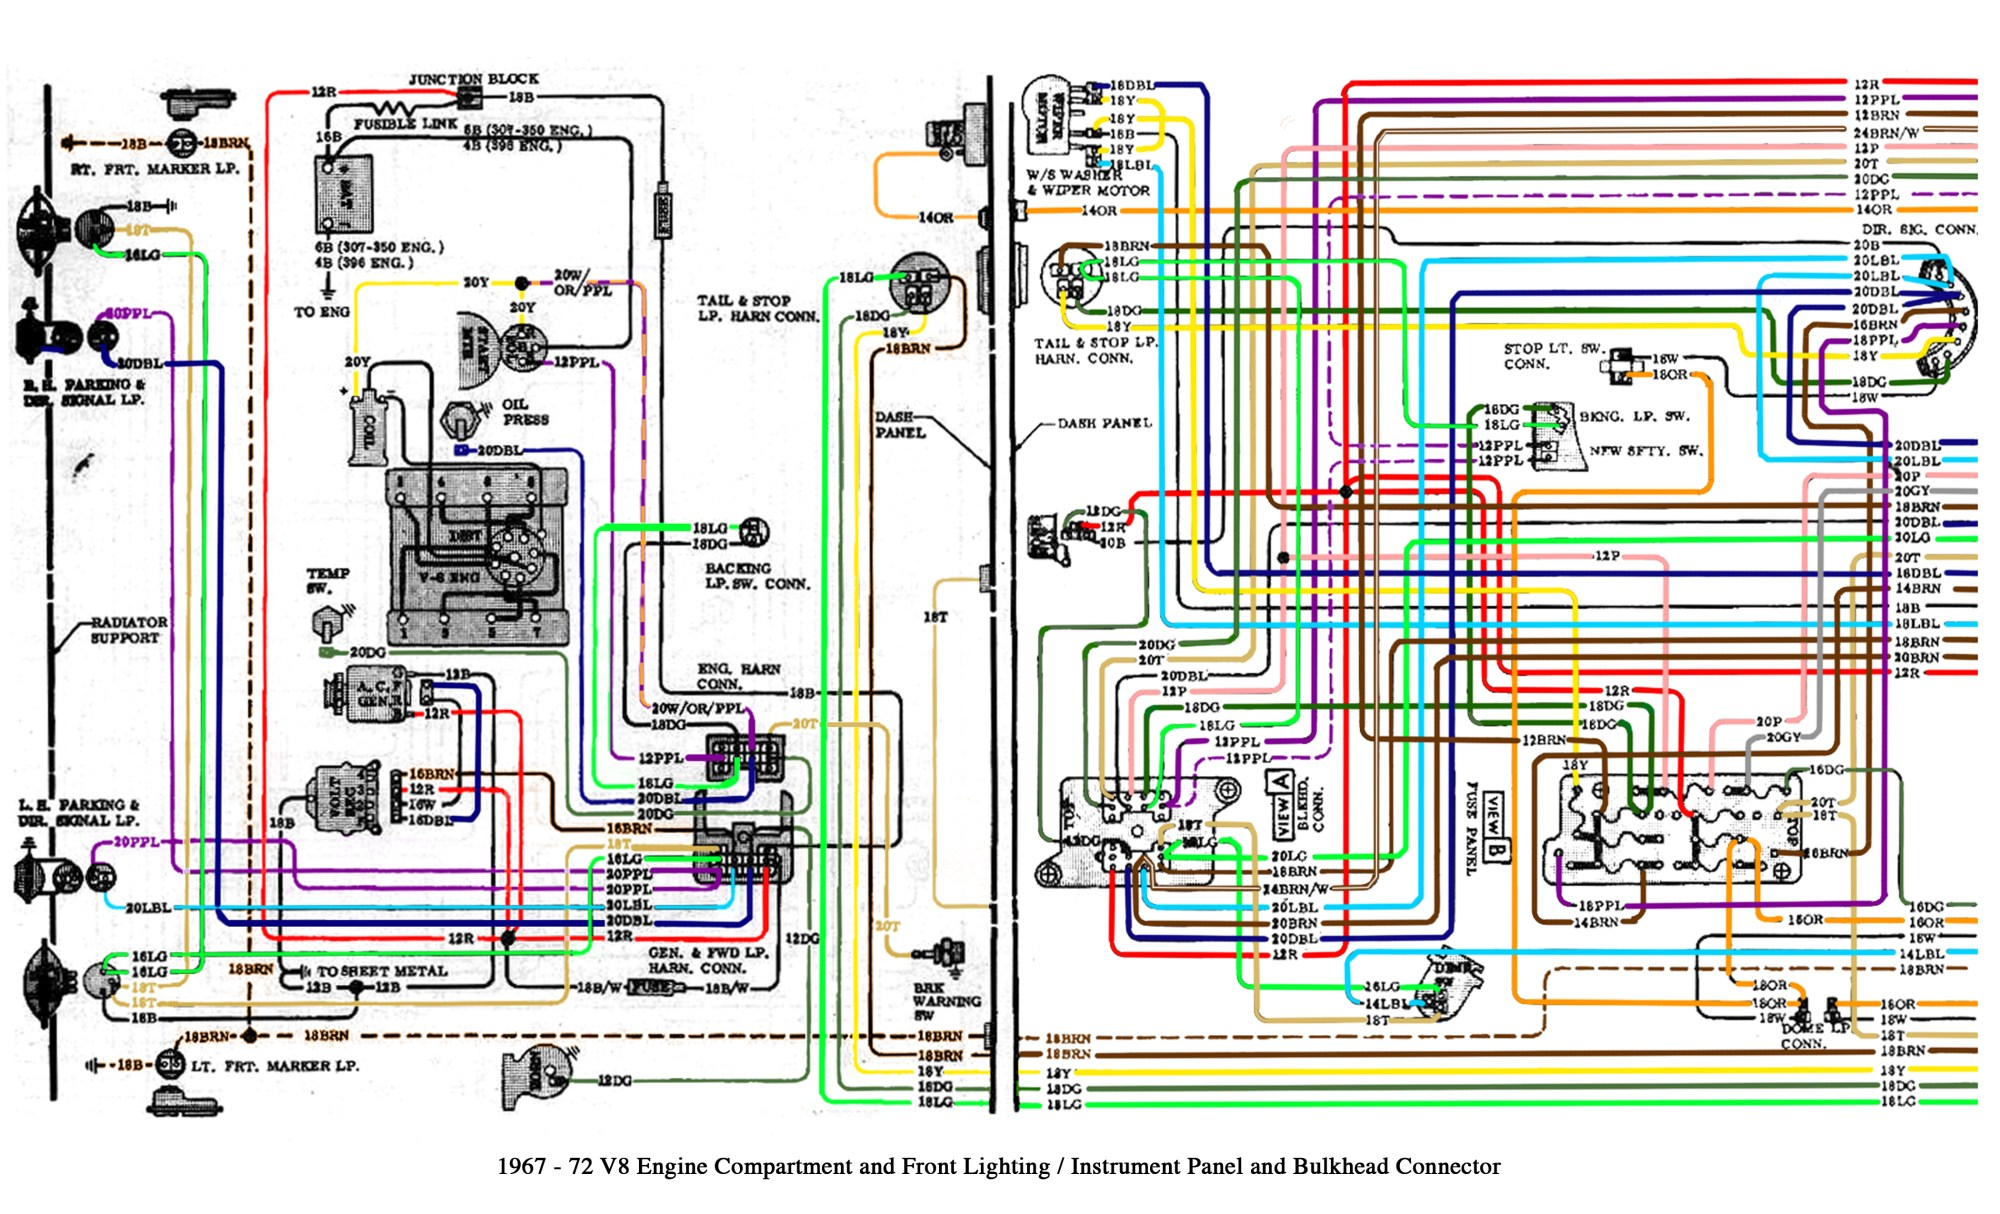 hight resolution of 68 c10 wiring diagram free download schematic wiring diagram img 68 chevy truck wiring diagrams for free